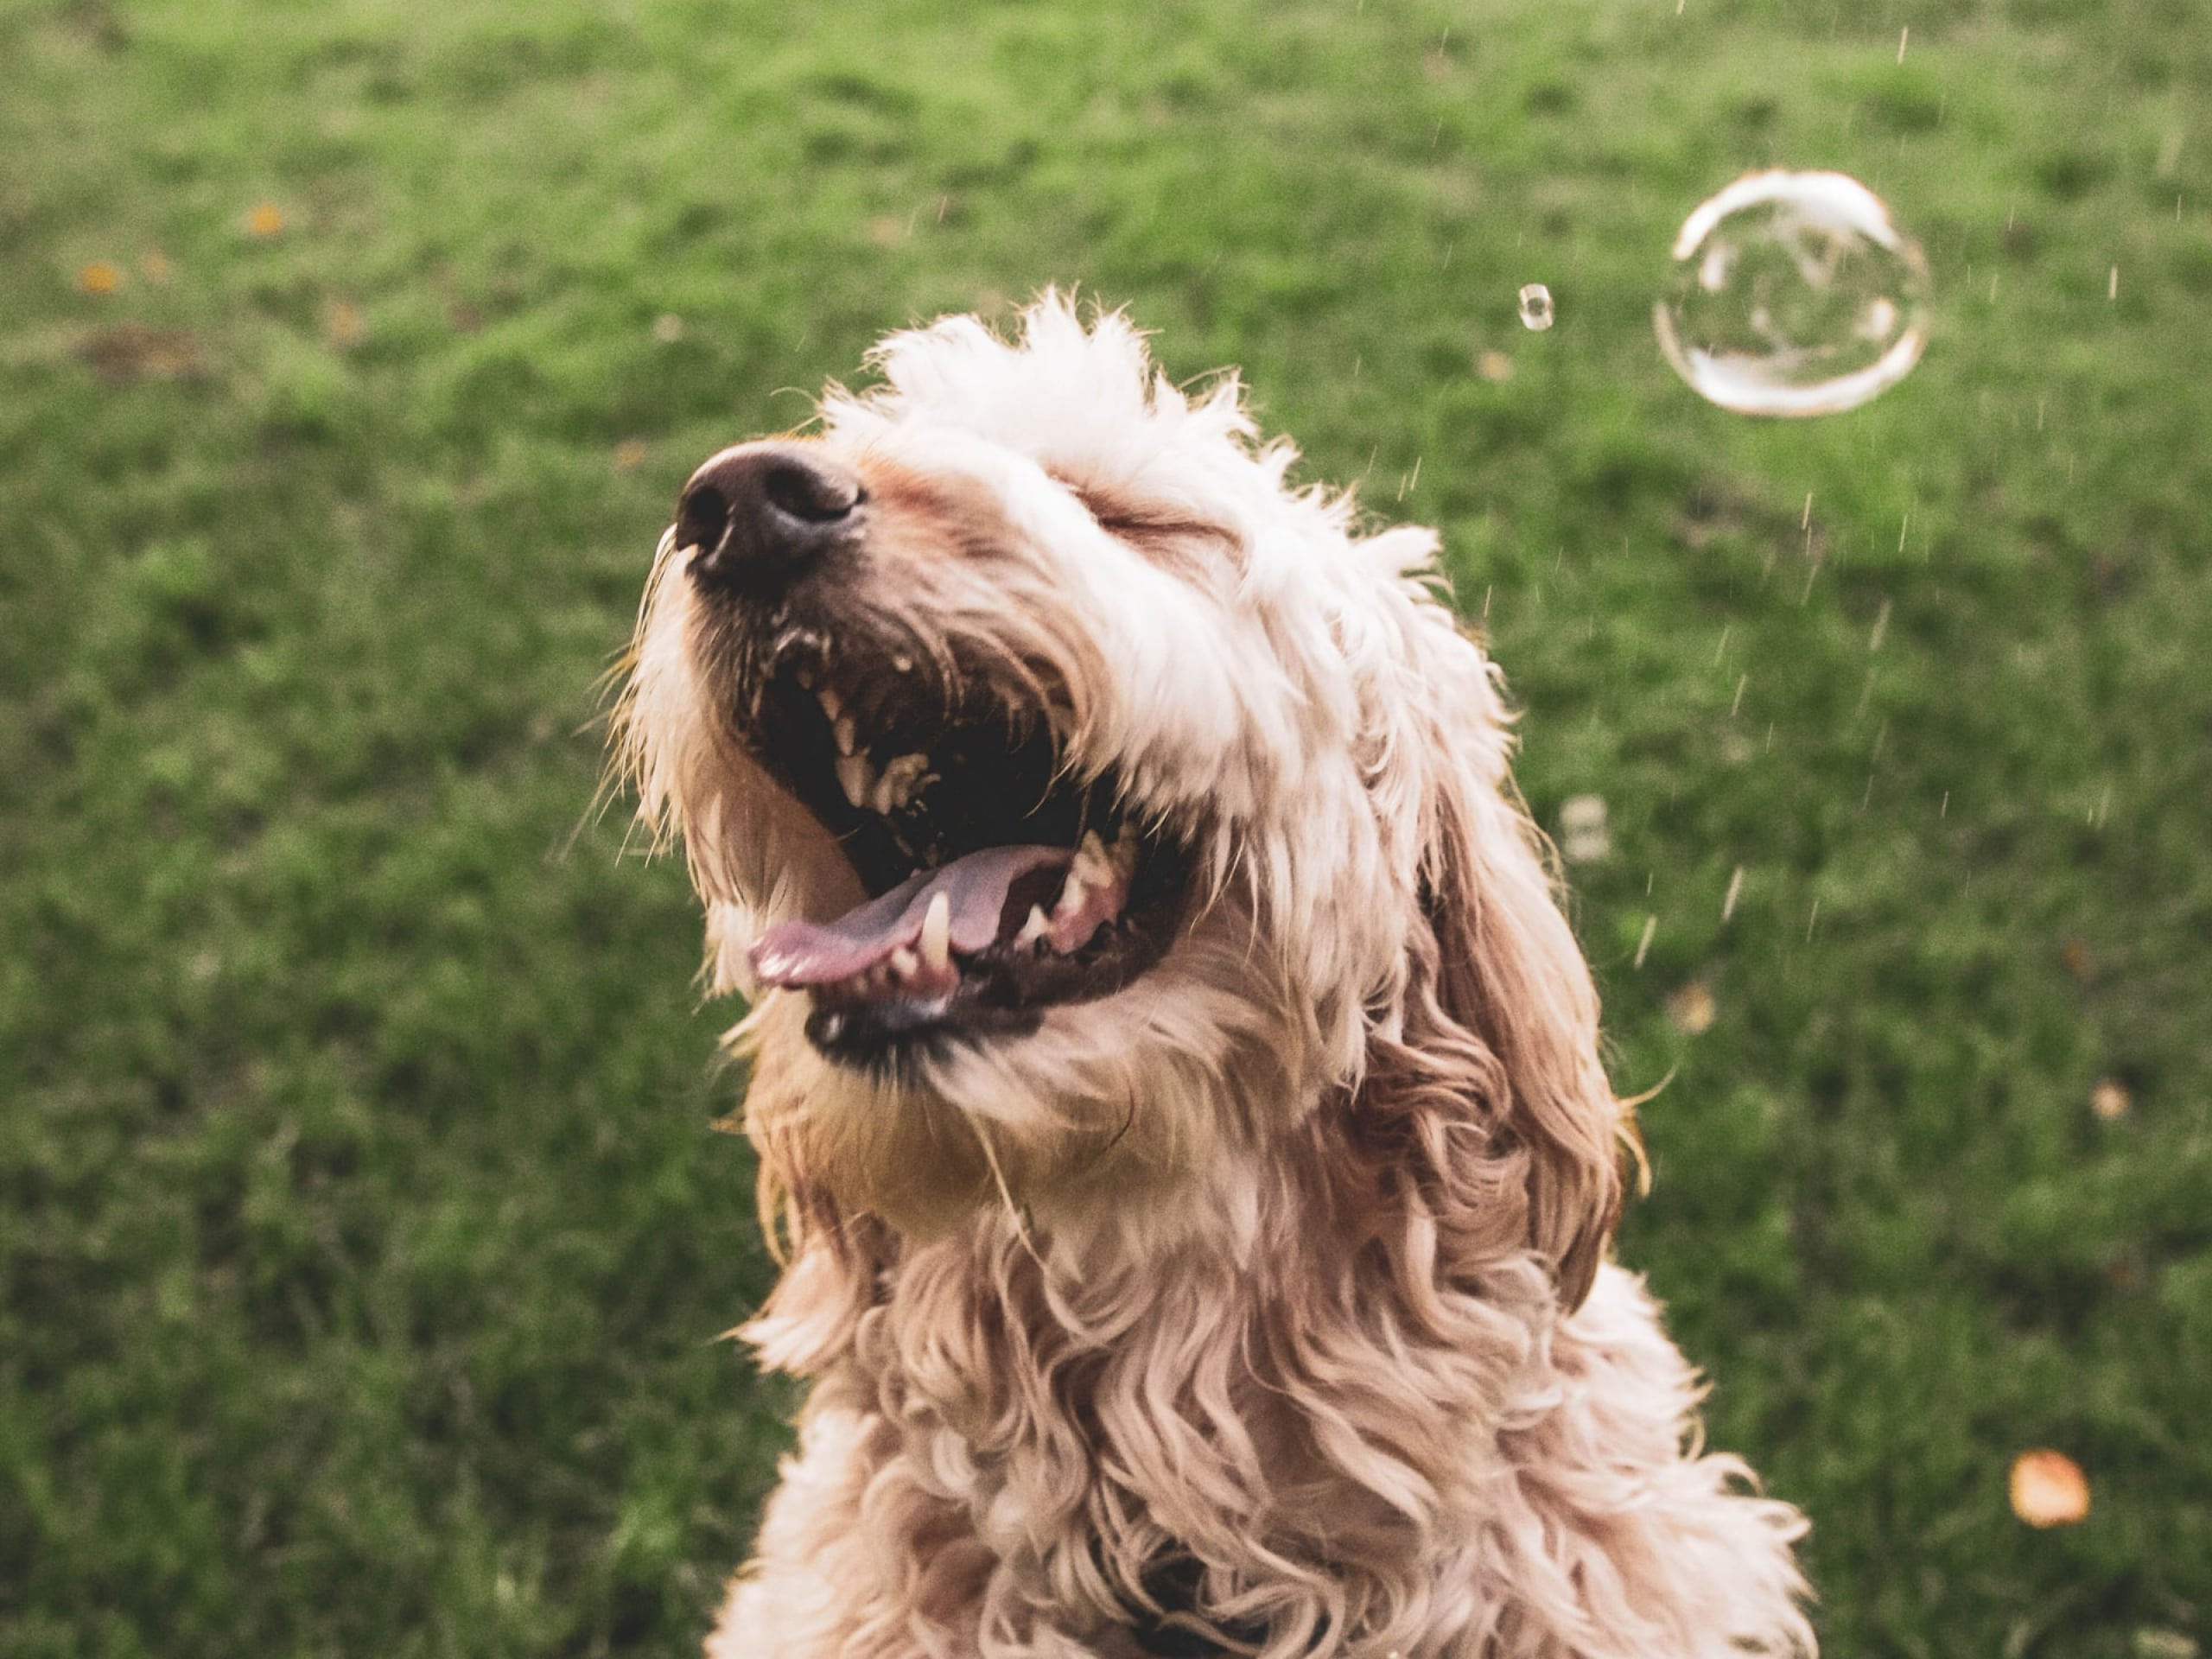 Dog sneezing with a bubble near its face